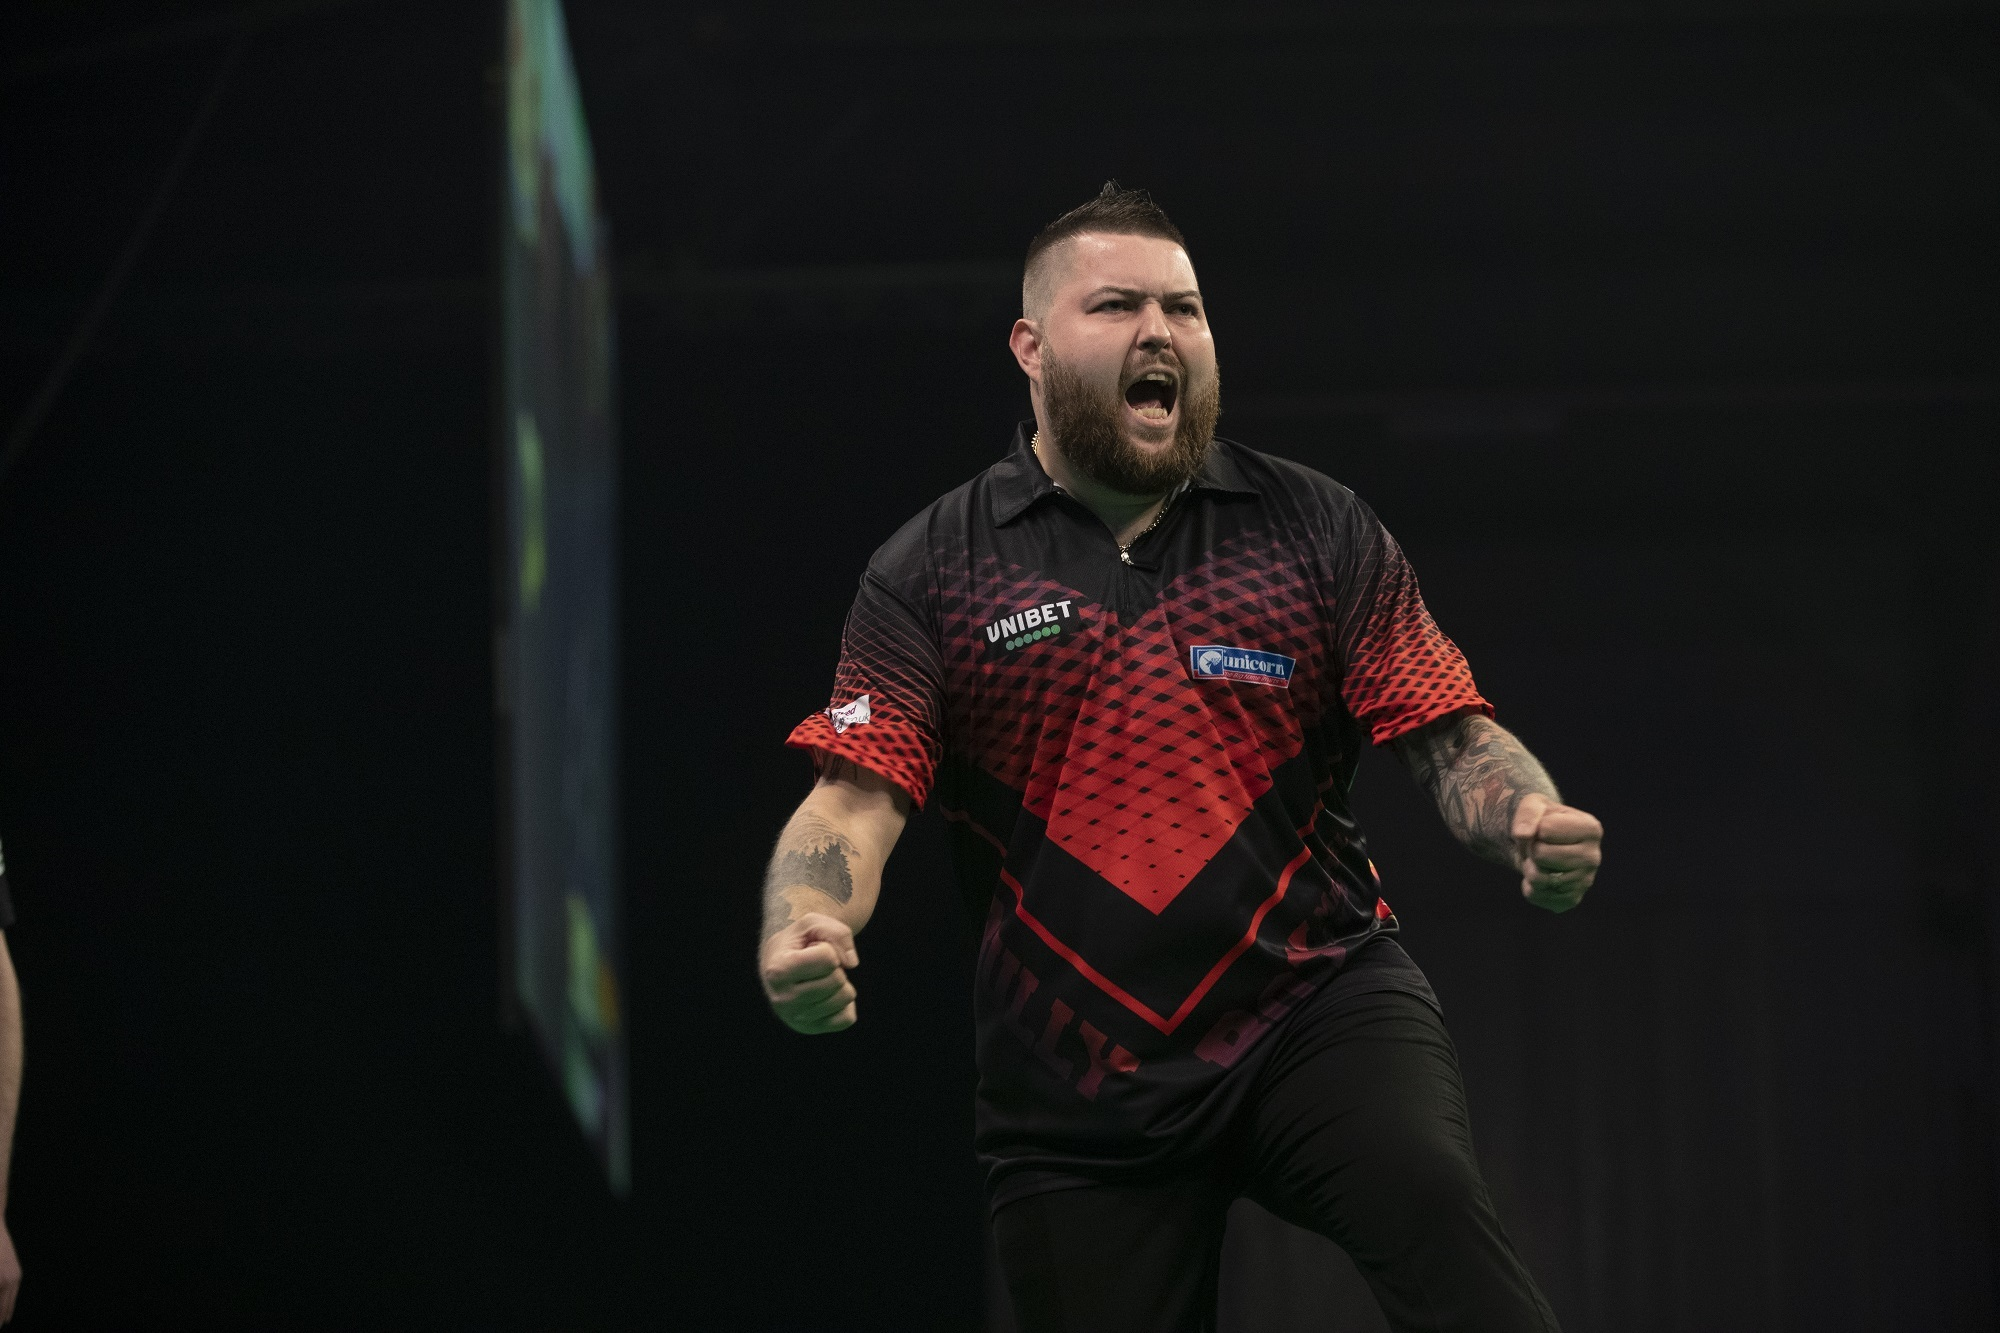 Stephen Bunting joins Michael Smith at Premier League in Liverpool